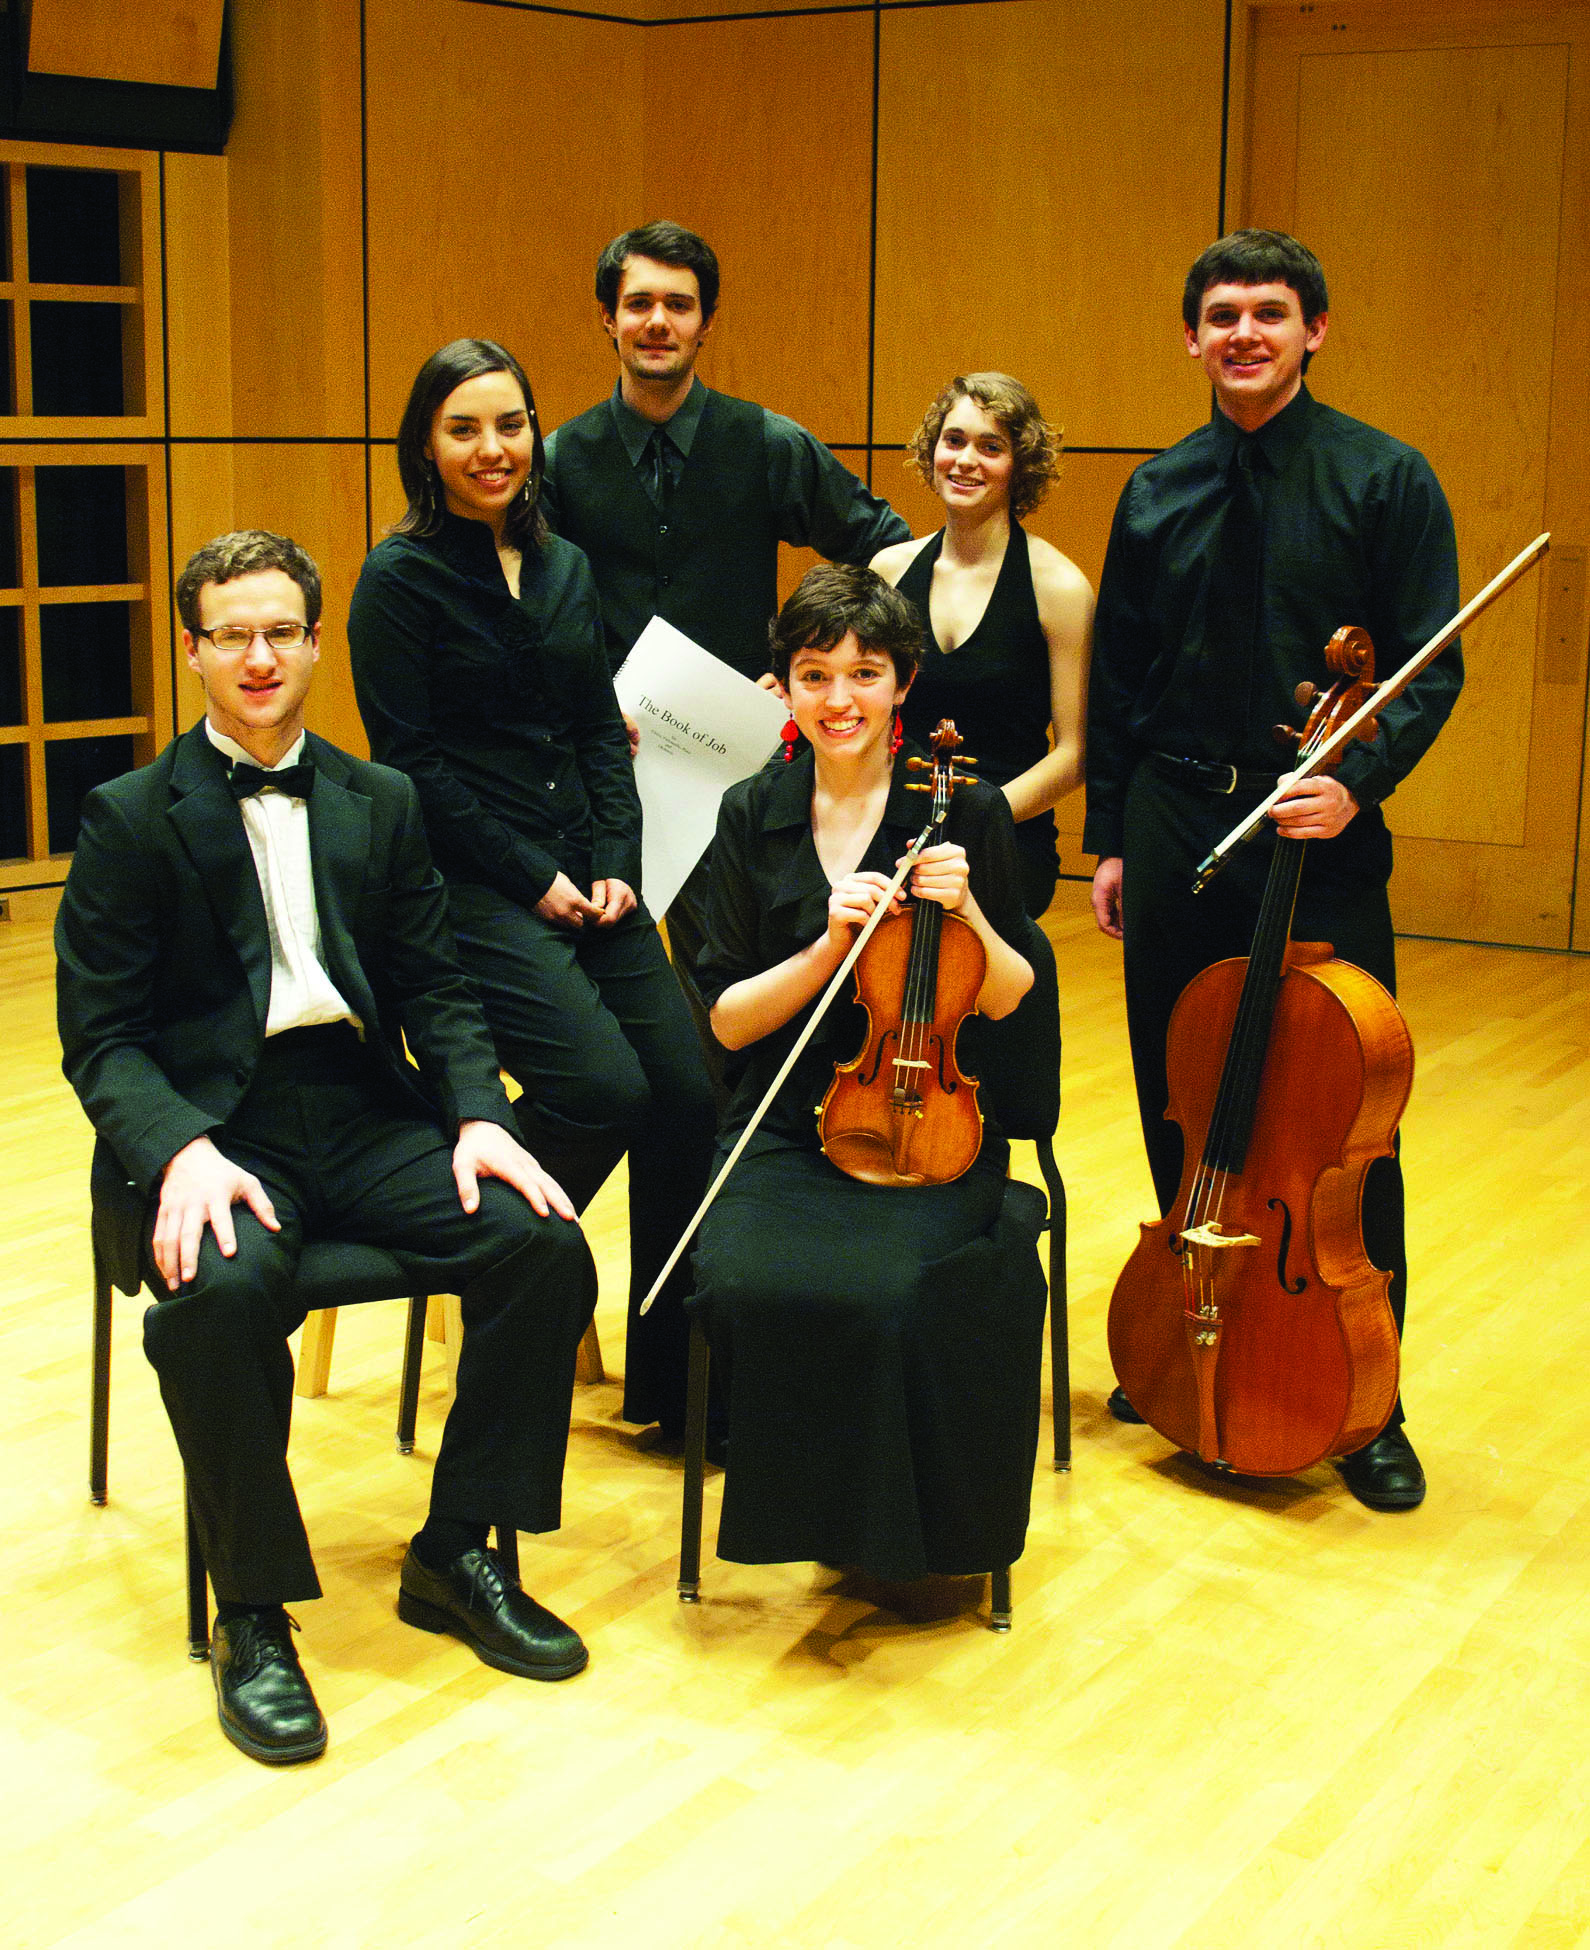 The six winners of the Concerto-Aria competition pose for a picture with their instruments in Sauder Concert Hall